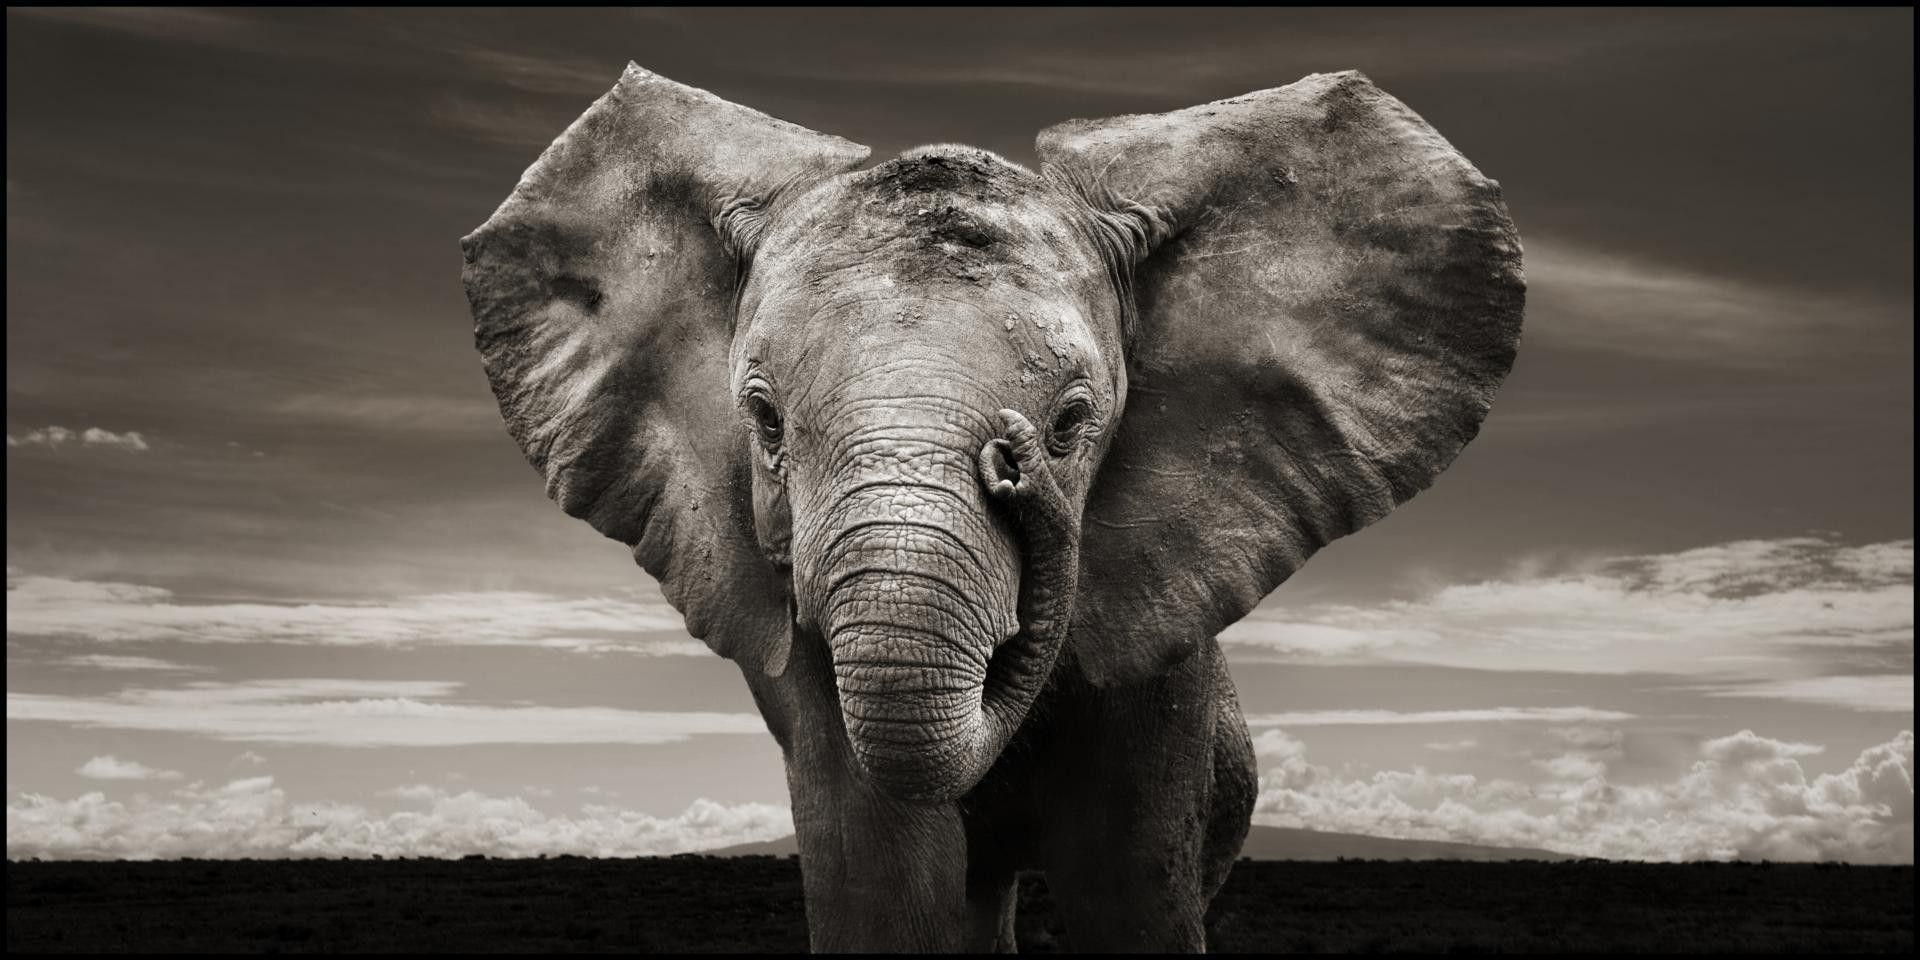 Elephant Computer Wallpapers, Desktop Backgrounds 1920x960 Id: 193044